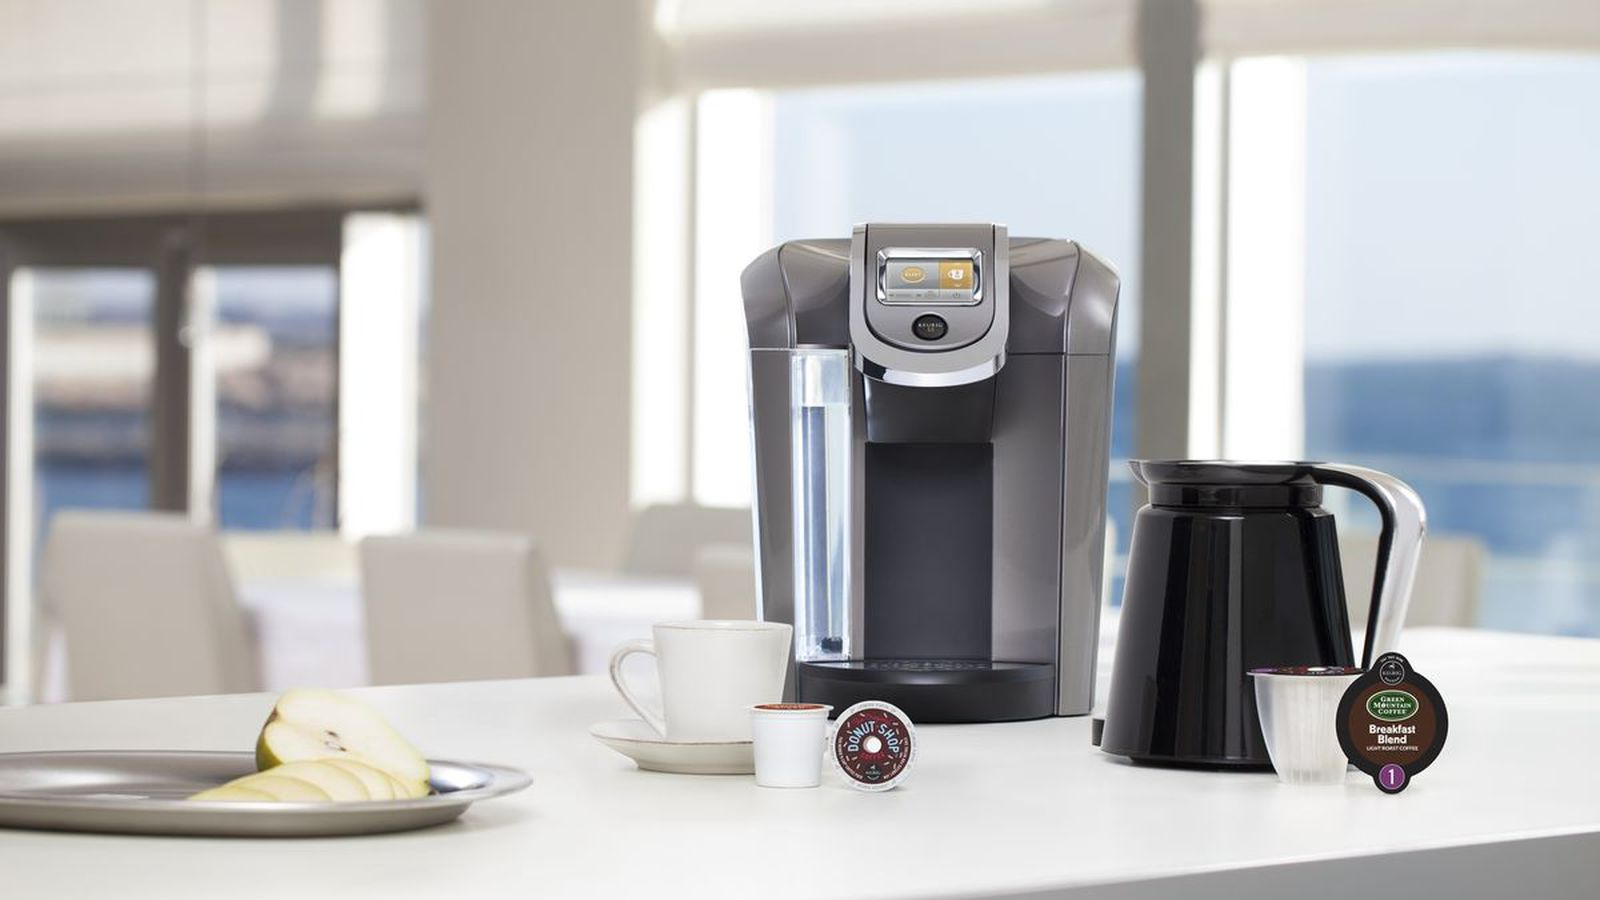 Hacking a Keurig to use cheap coffee pods only requires scissors and tape - The Verge